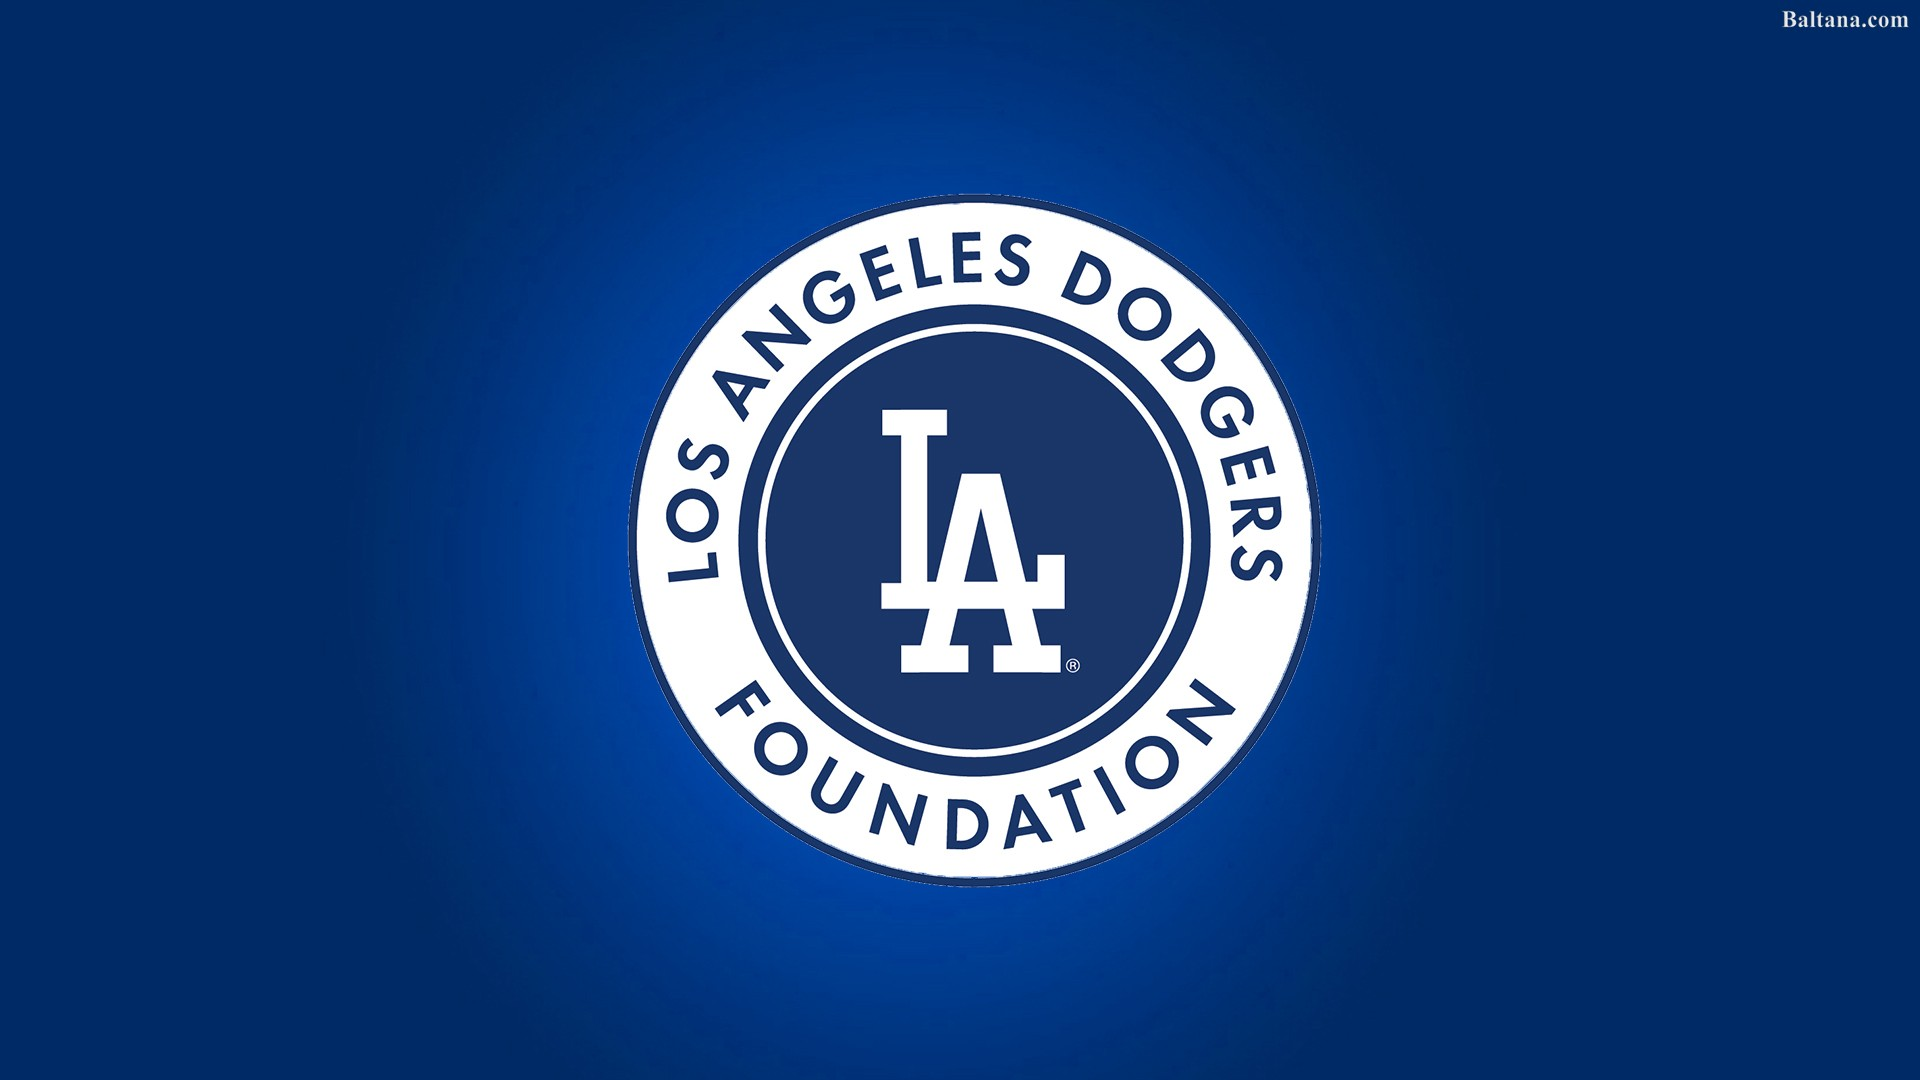 Free Download Los Angeles Dodgers Wallpapers Hd Backgrounds Images Pics 1920x1080 For Your Desktop Mobile Tablet Explore 25 The Los Angeles Dodgers Wallpapers The Los Angeles Dodgers Wallpapers Los